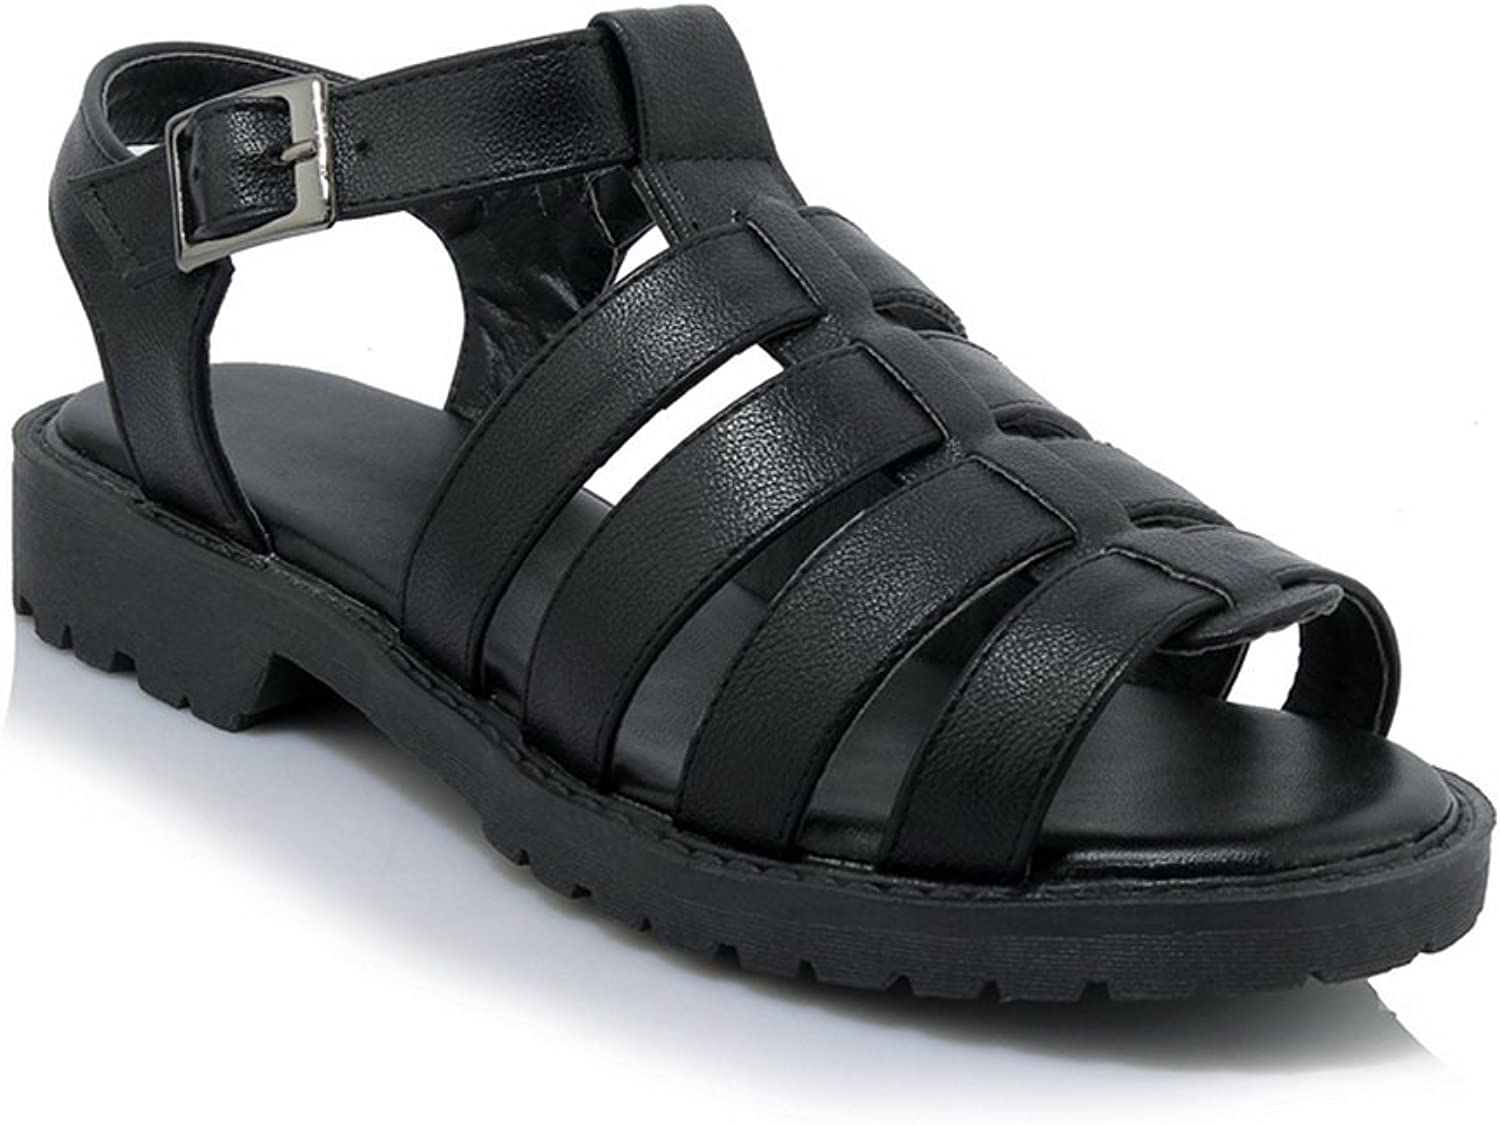 AdeeSu Womens Sandals Peep-Toe Buckle Heeled Leather-and-Synthetic Huarache Treaded-Sole Hiking Smooth Leather Urethane Sandals SLC03513